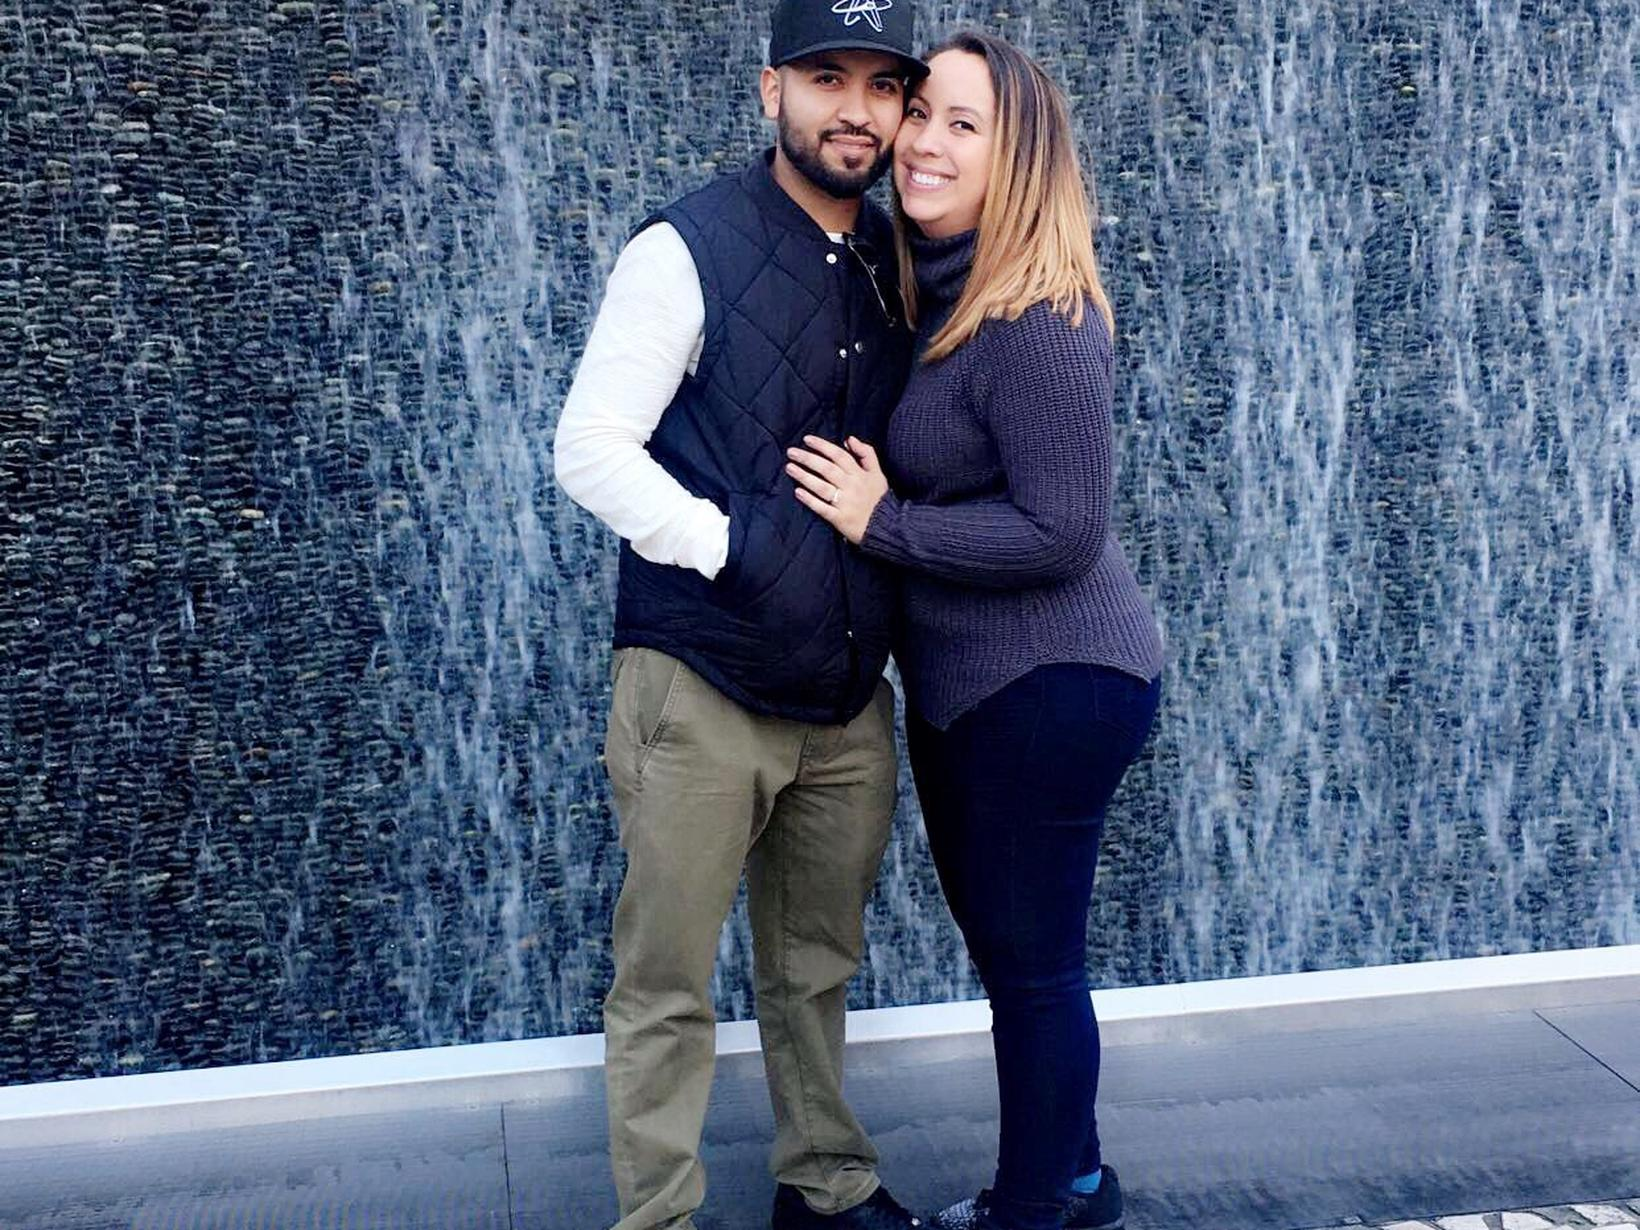 Stephanie & Eric from Albuquerque, New Mexico, United States